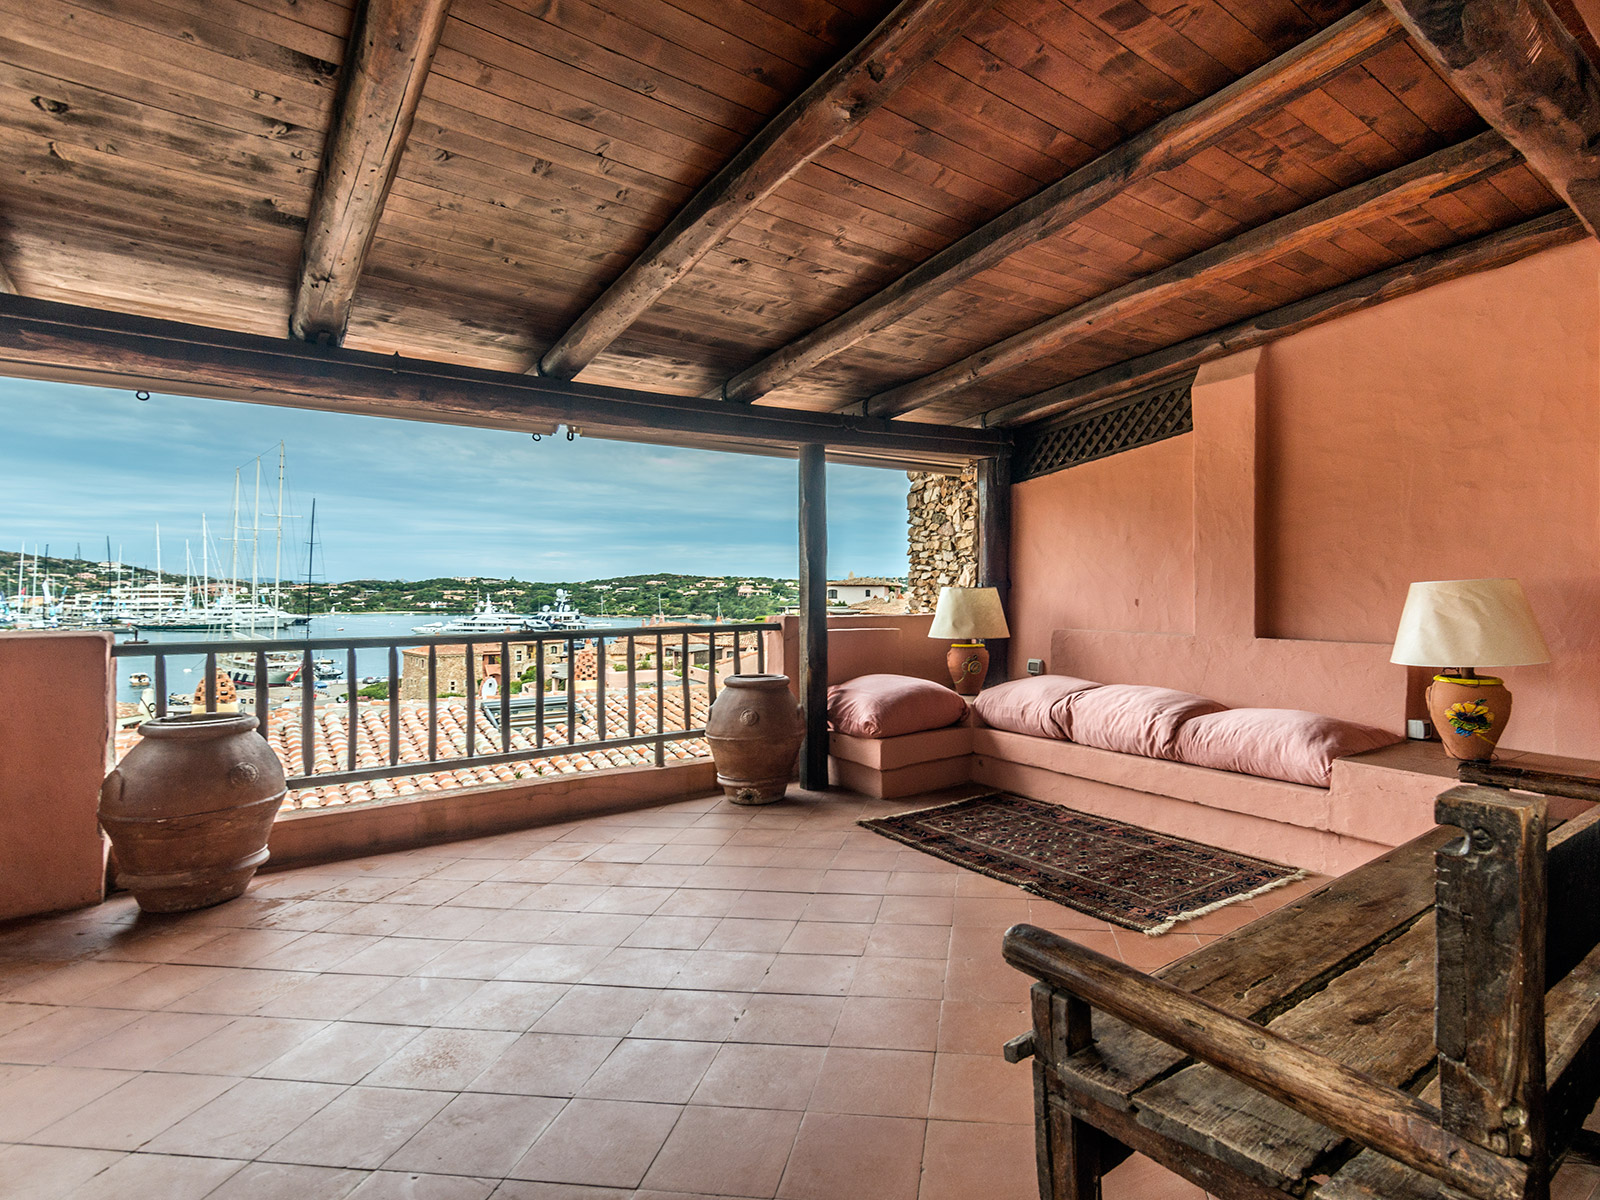 Single Family Home for Sale at Harbor front residence in gated community Porto Cervo Porto Cervo, 07020 Italy